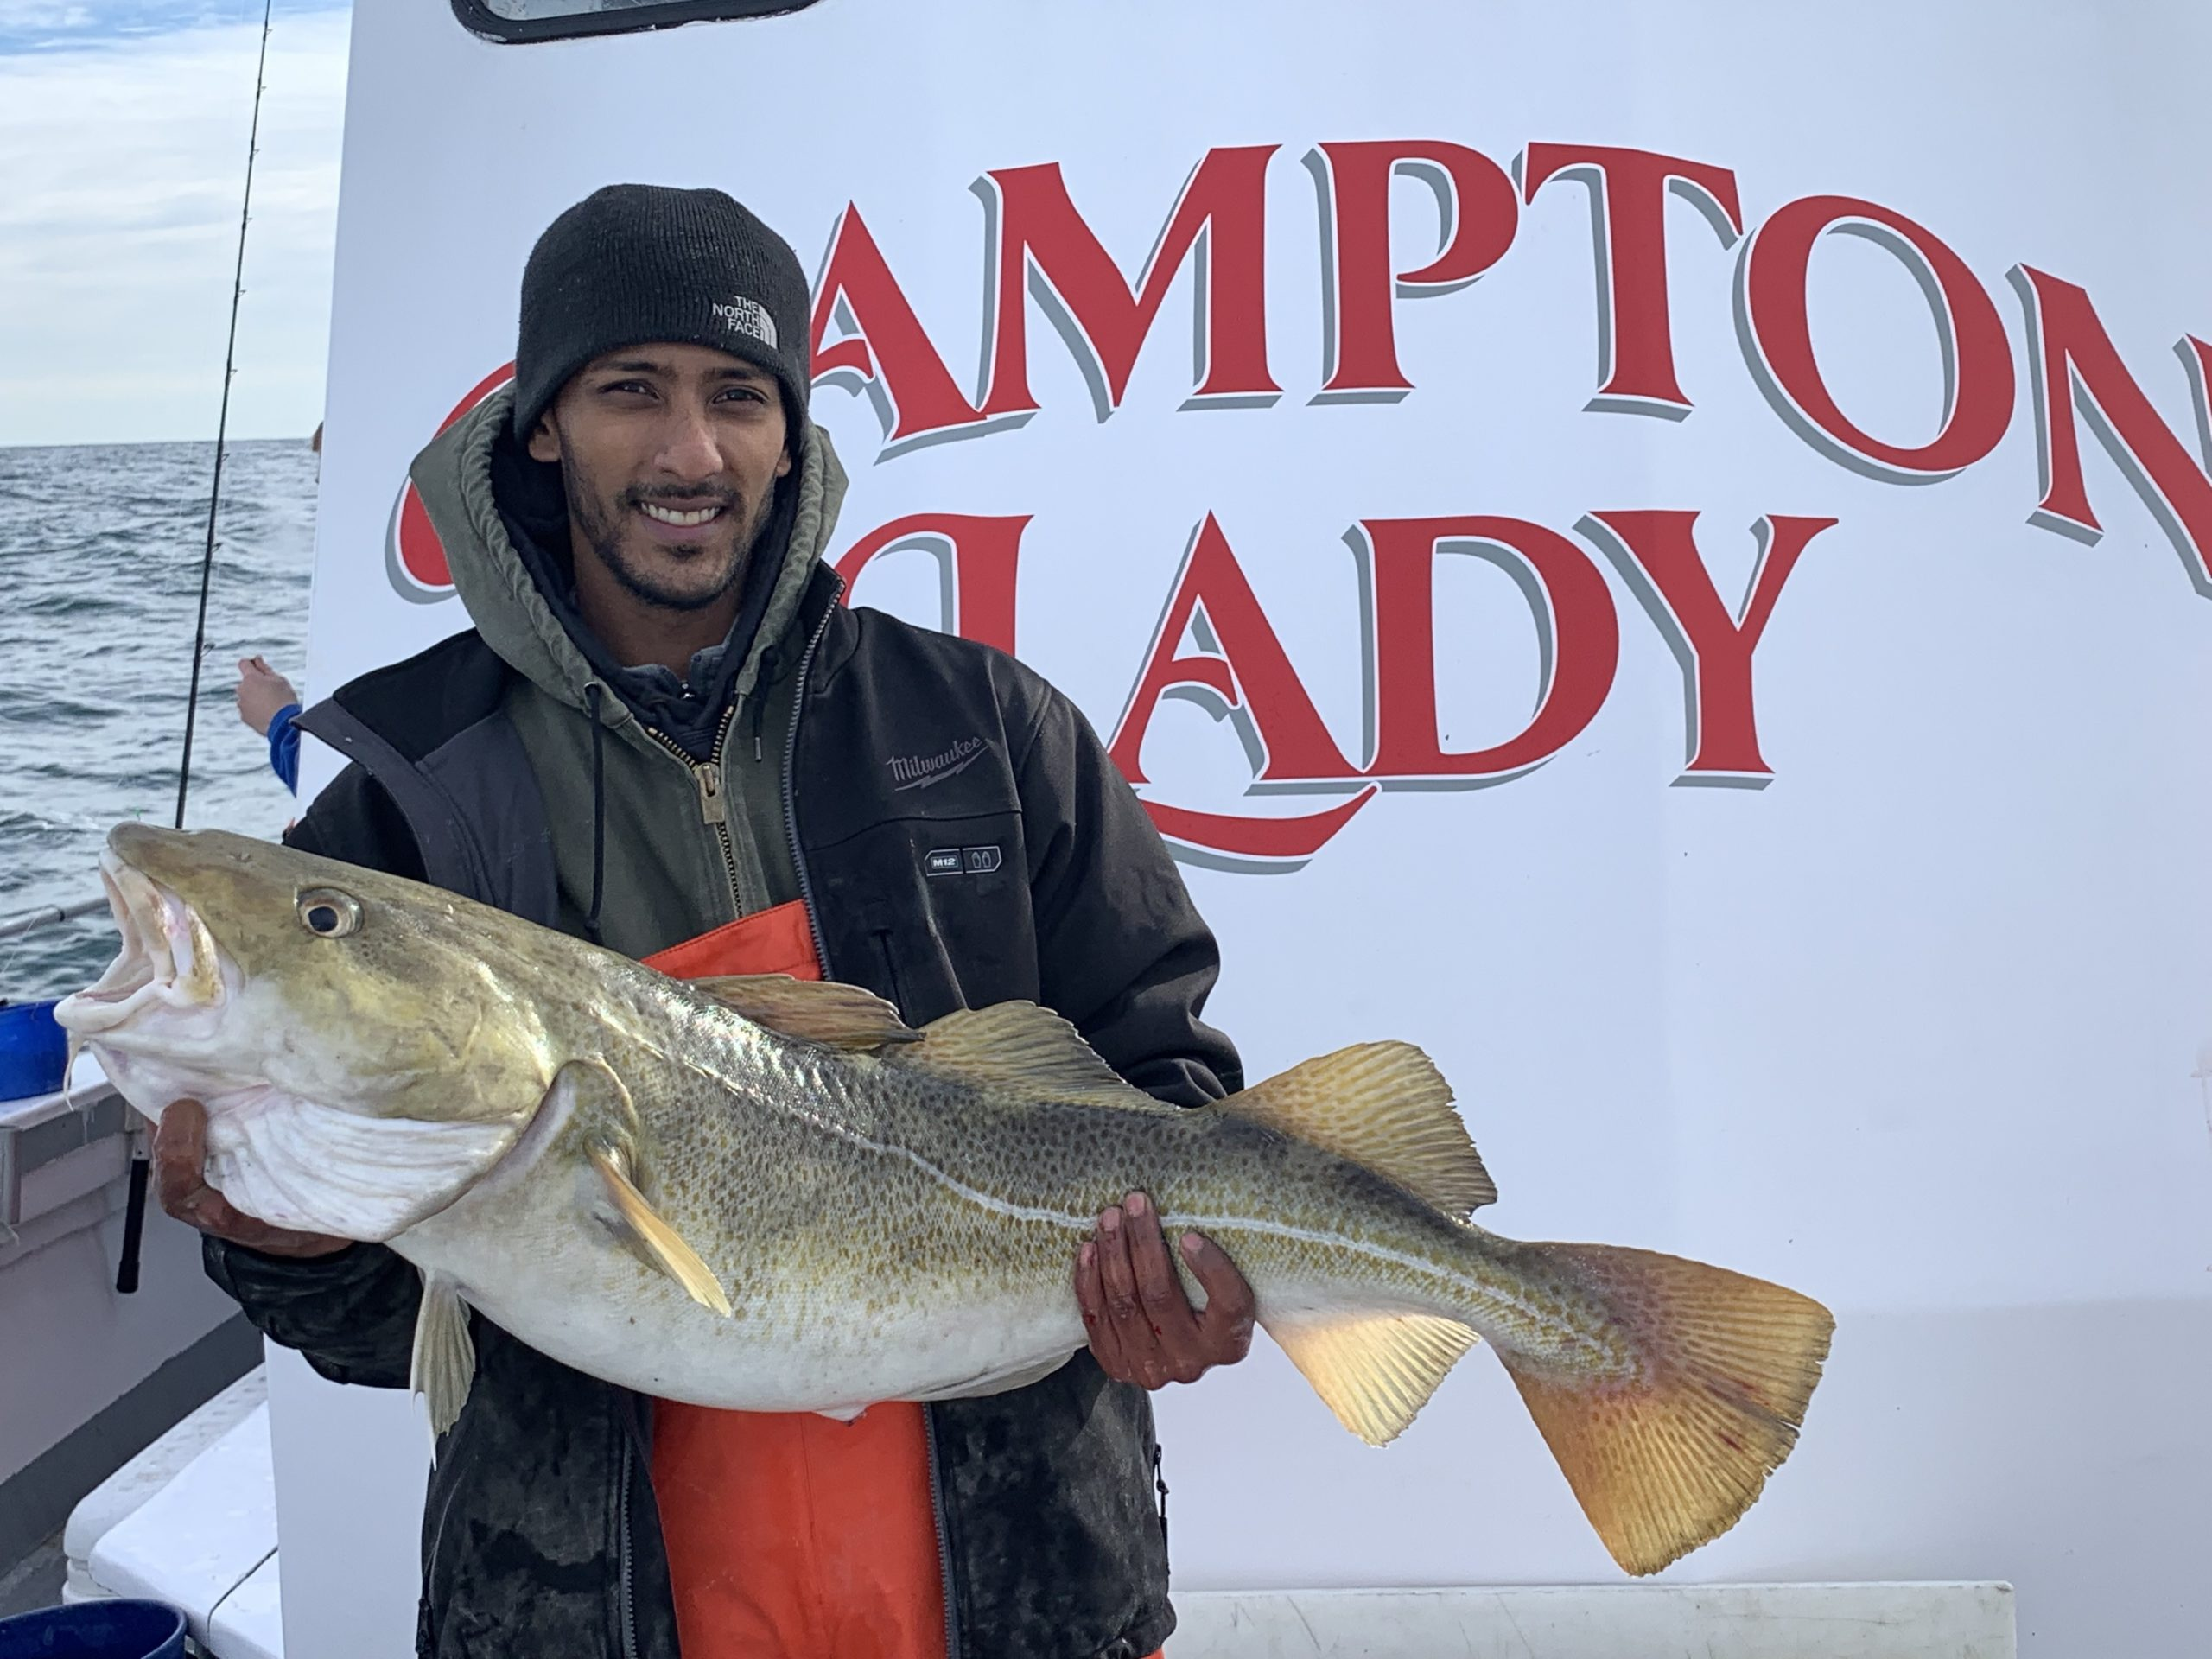 Sean Lochan boated this large codfish while fishing aboard the Hampton Lady last week.